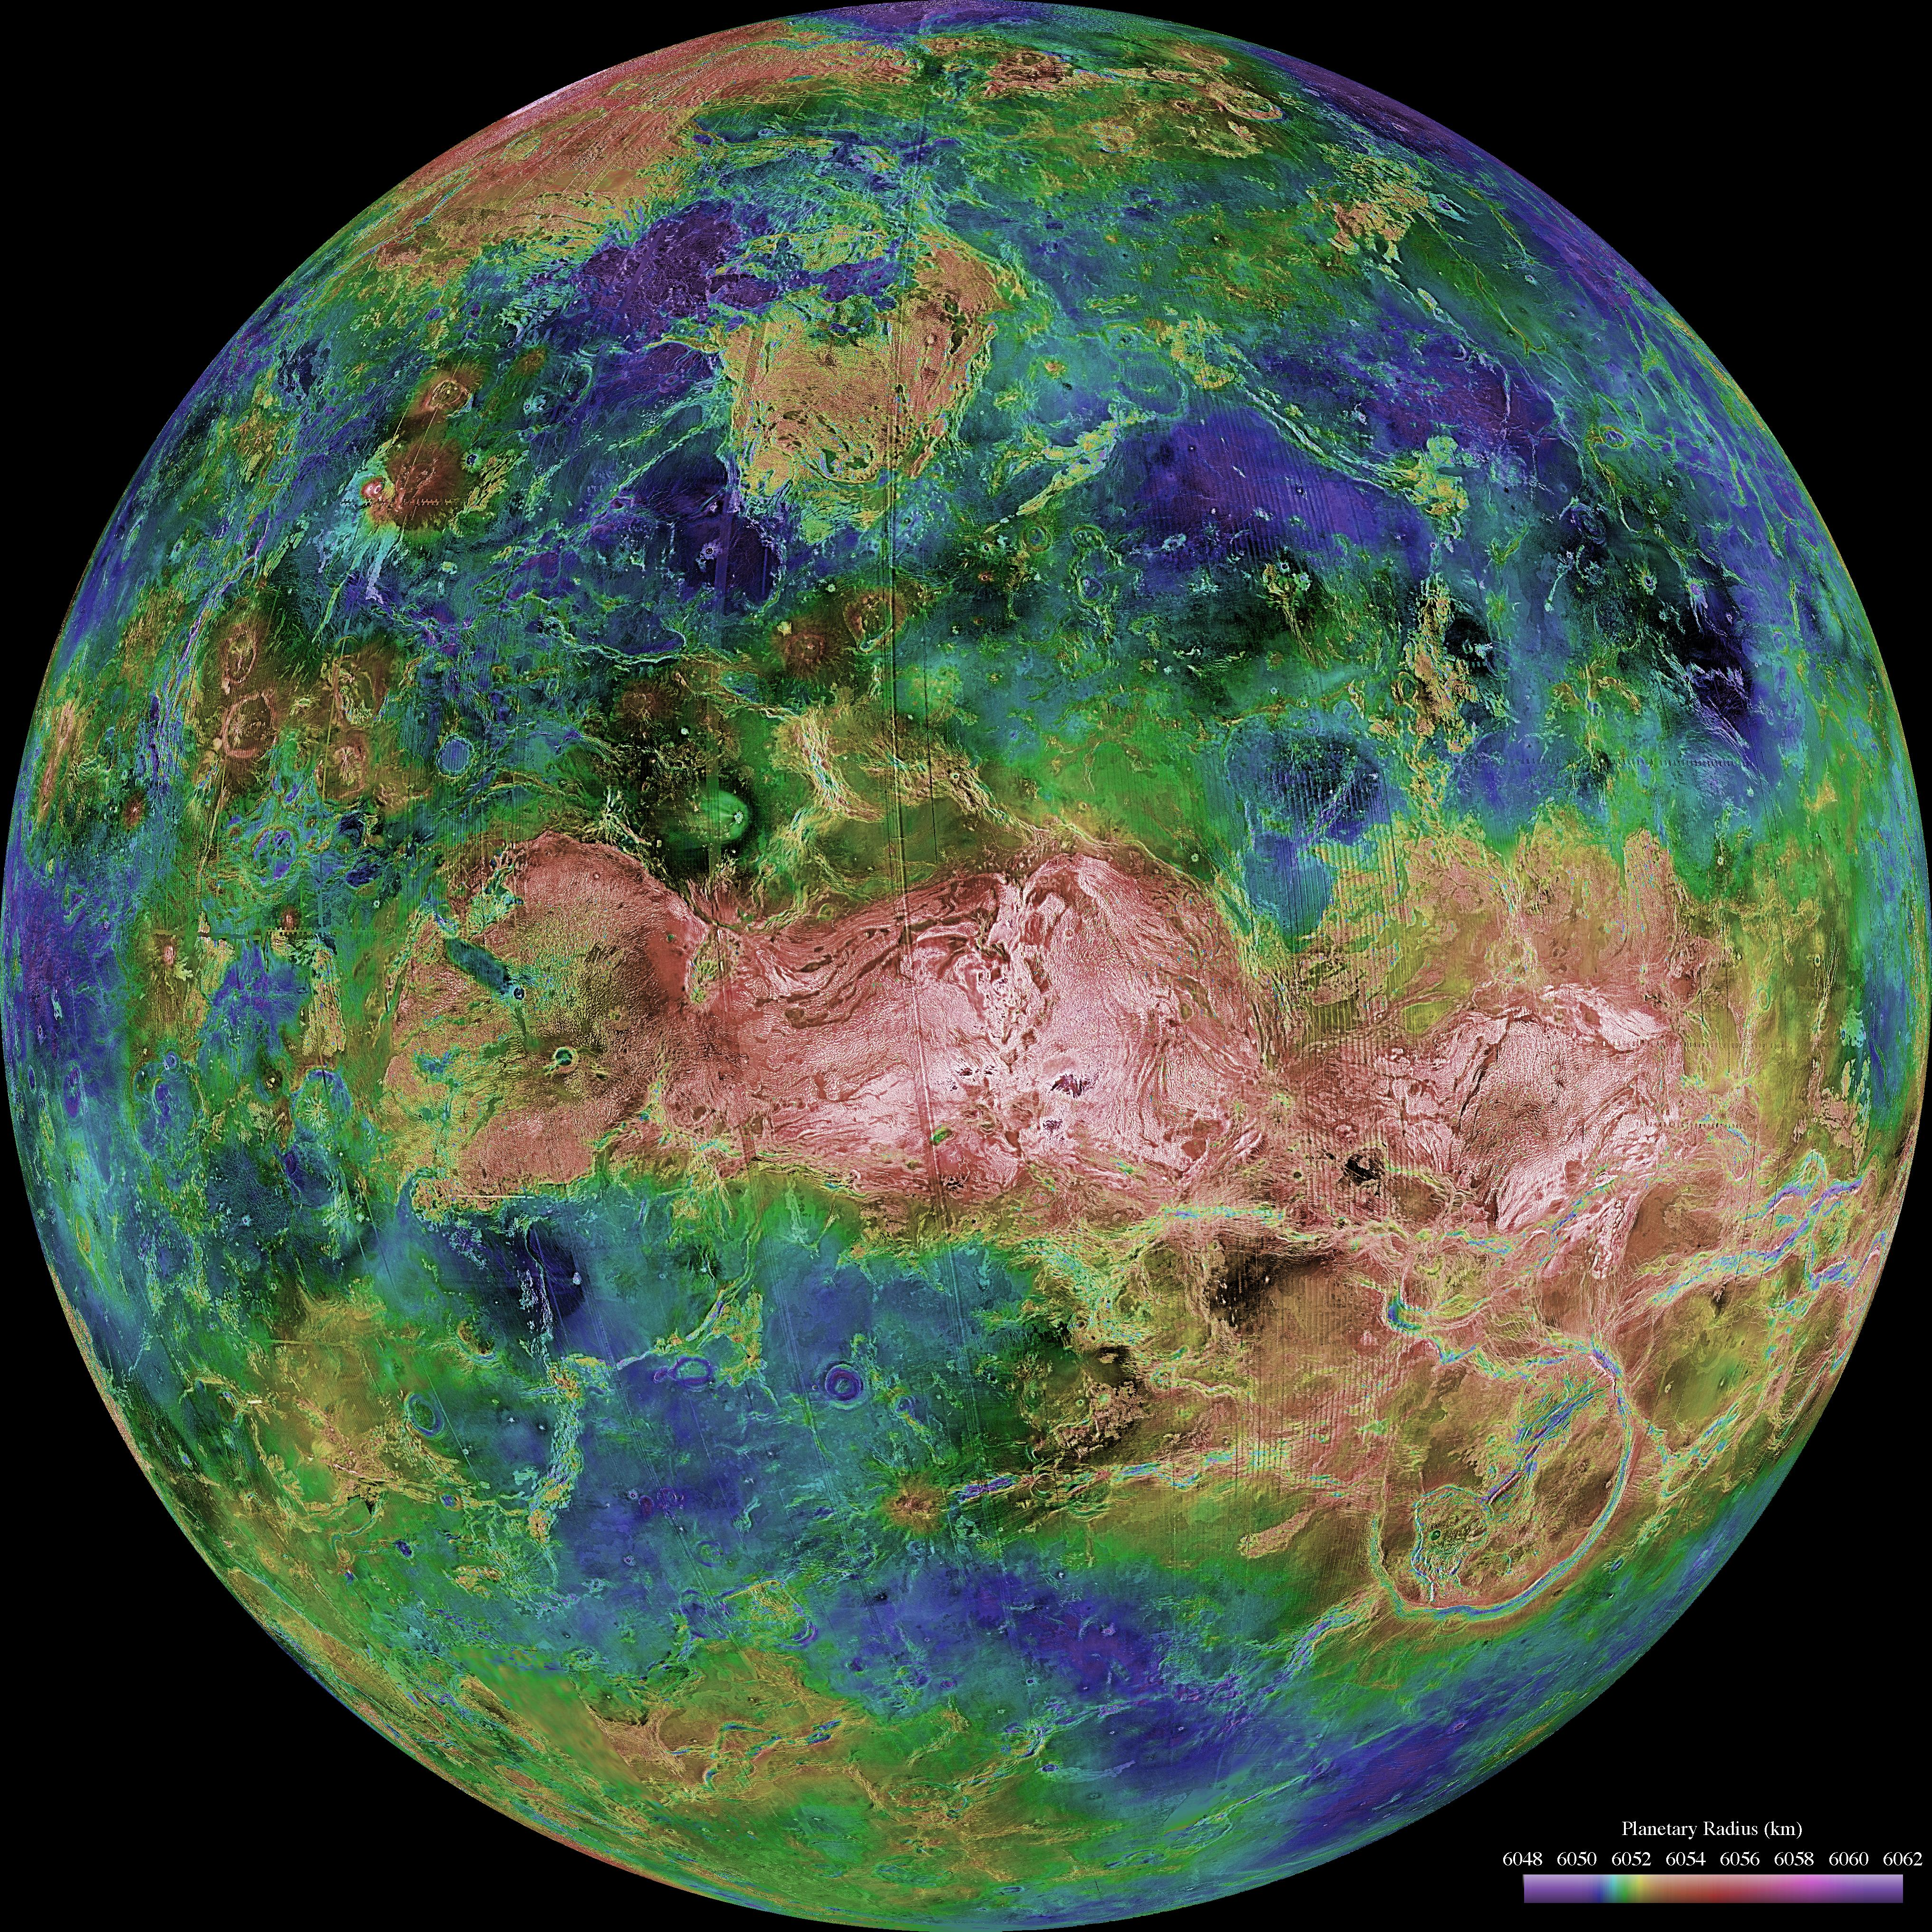 A topographical map of Venus, image courtesy of NASA/JPL/USGS